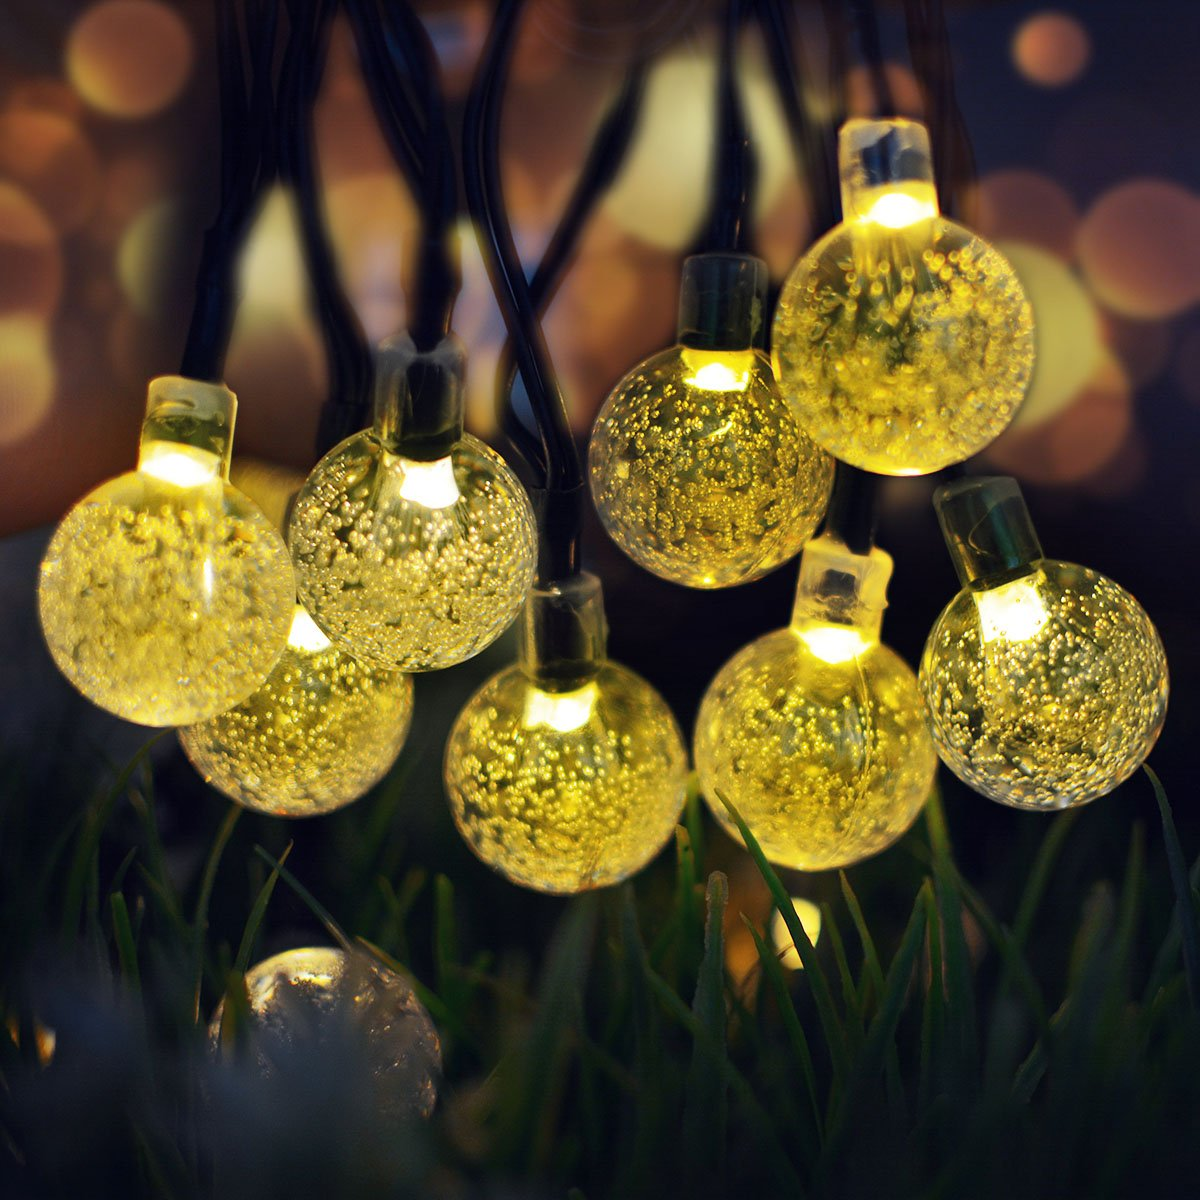 onEveryBaby 23ft 50 LED Solar String Ball Lights Outdoor Waterproof Warm White Garden Decor by onEveryBaby